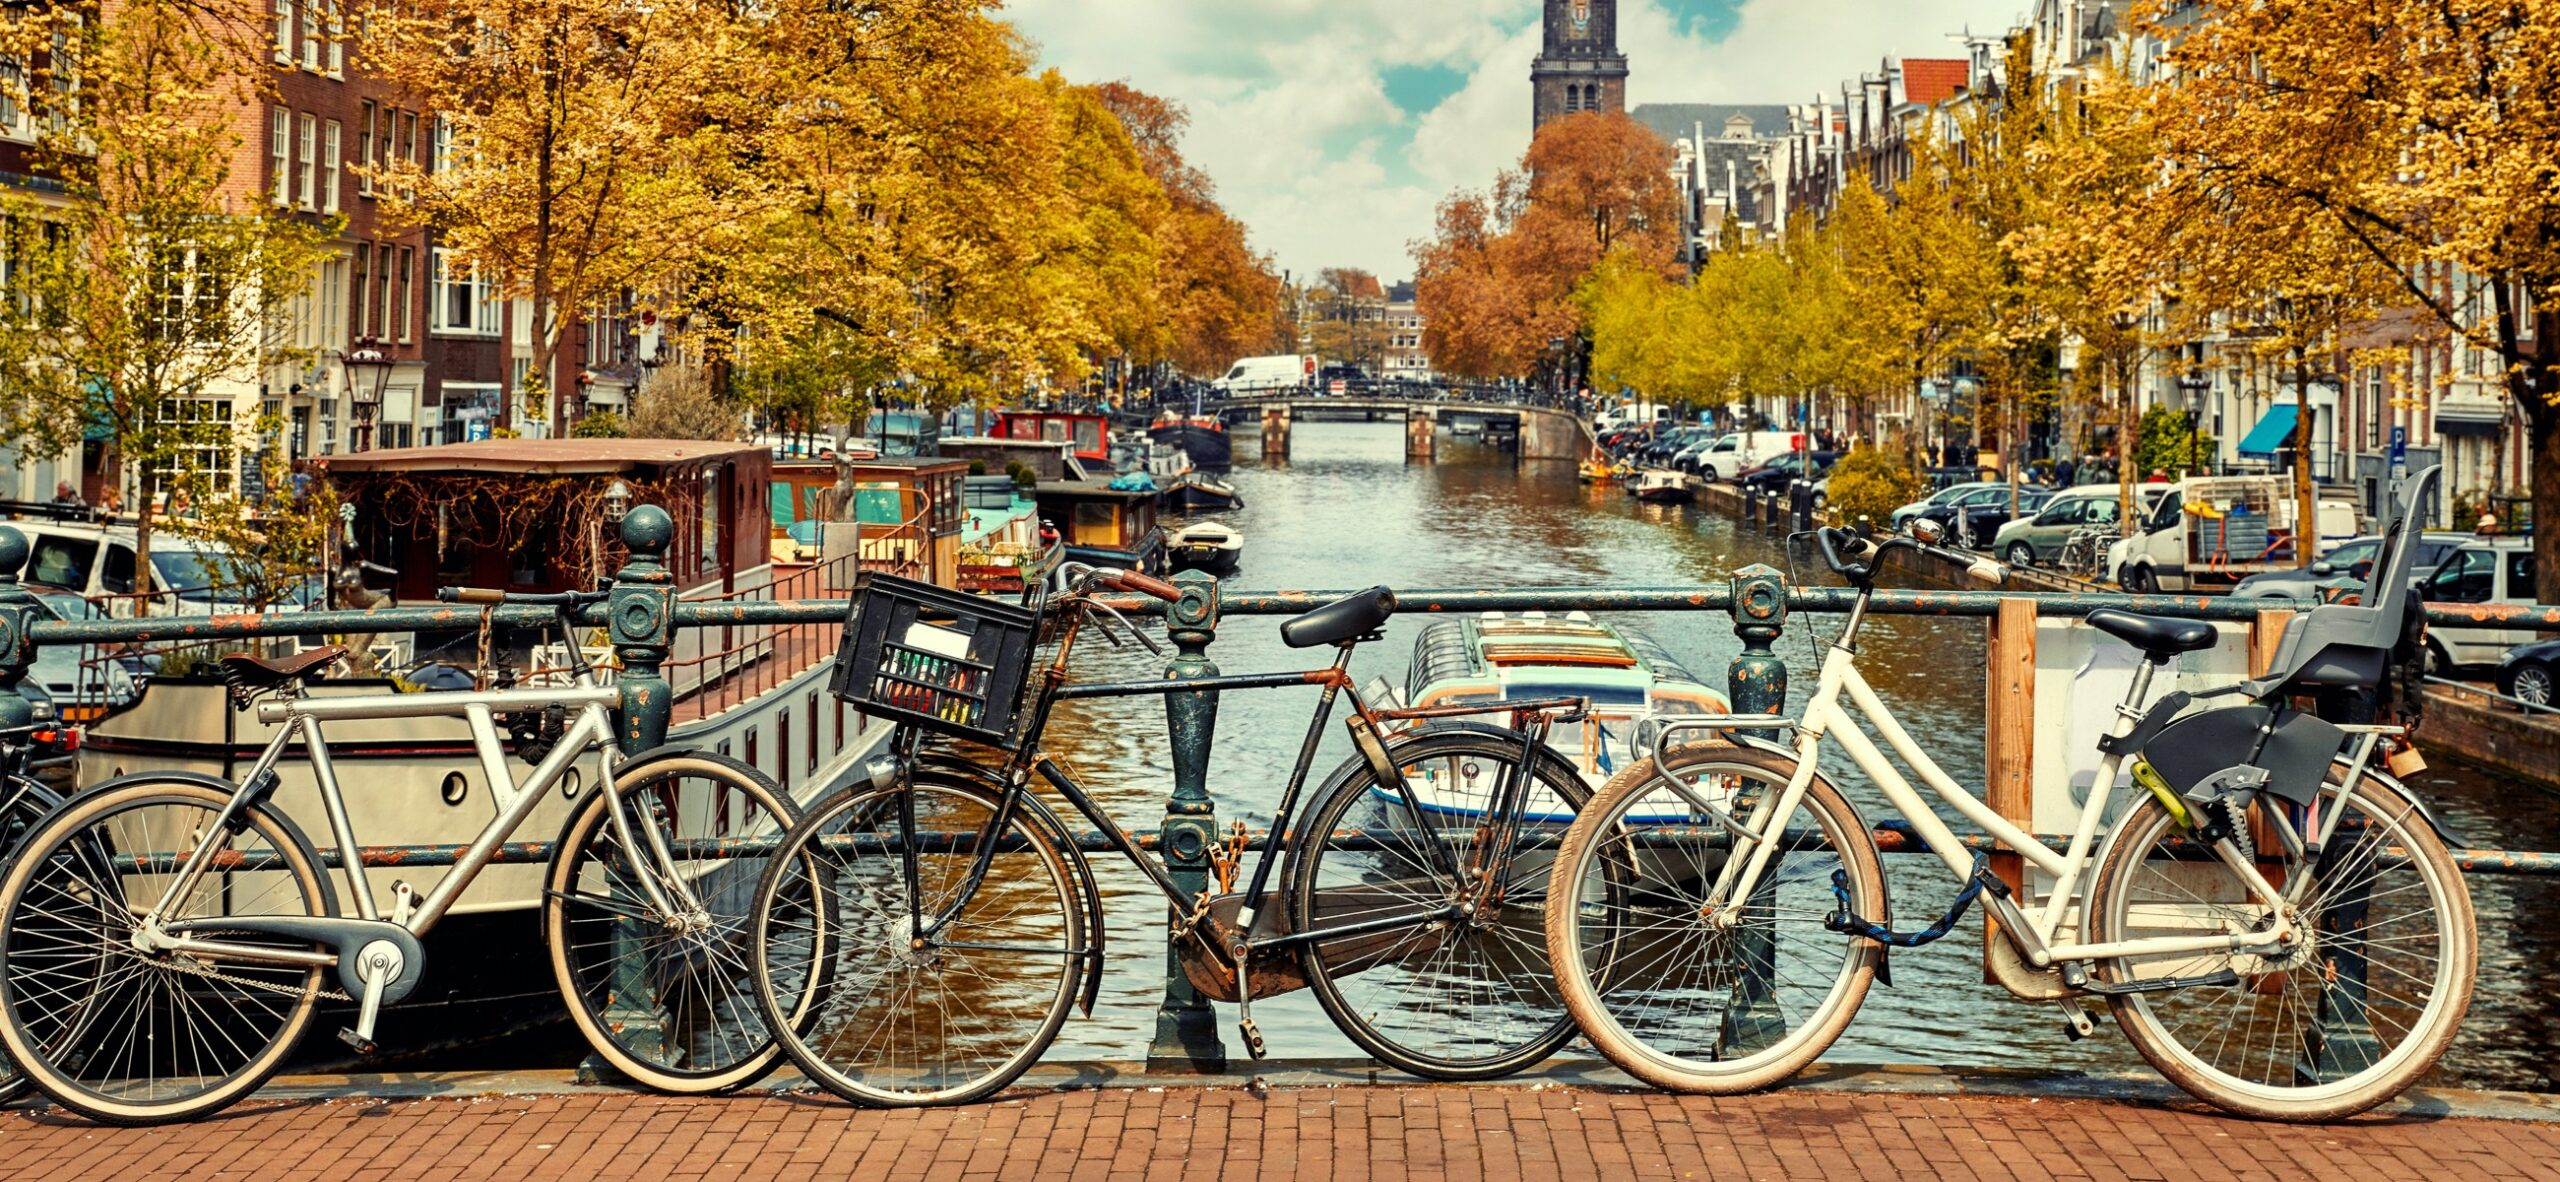 Canals, Museums and More: Amsterdam's Best Bits